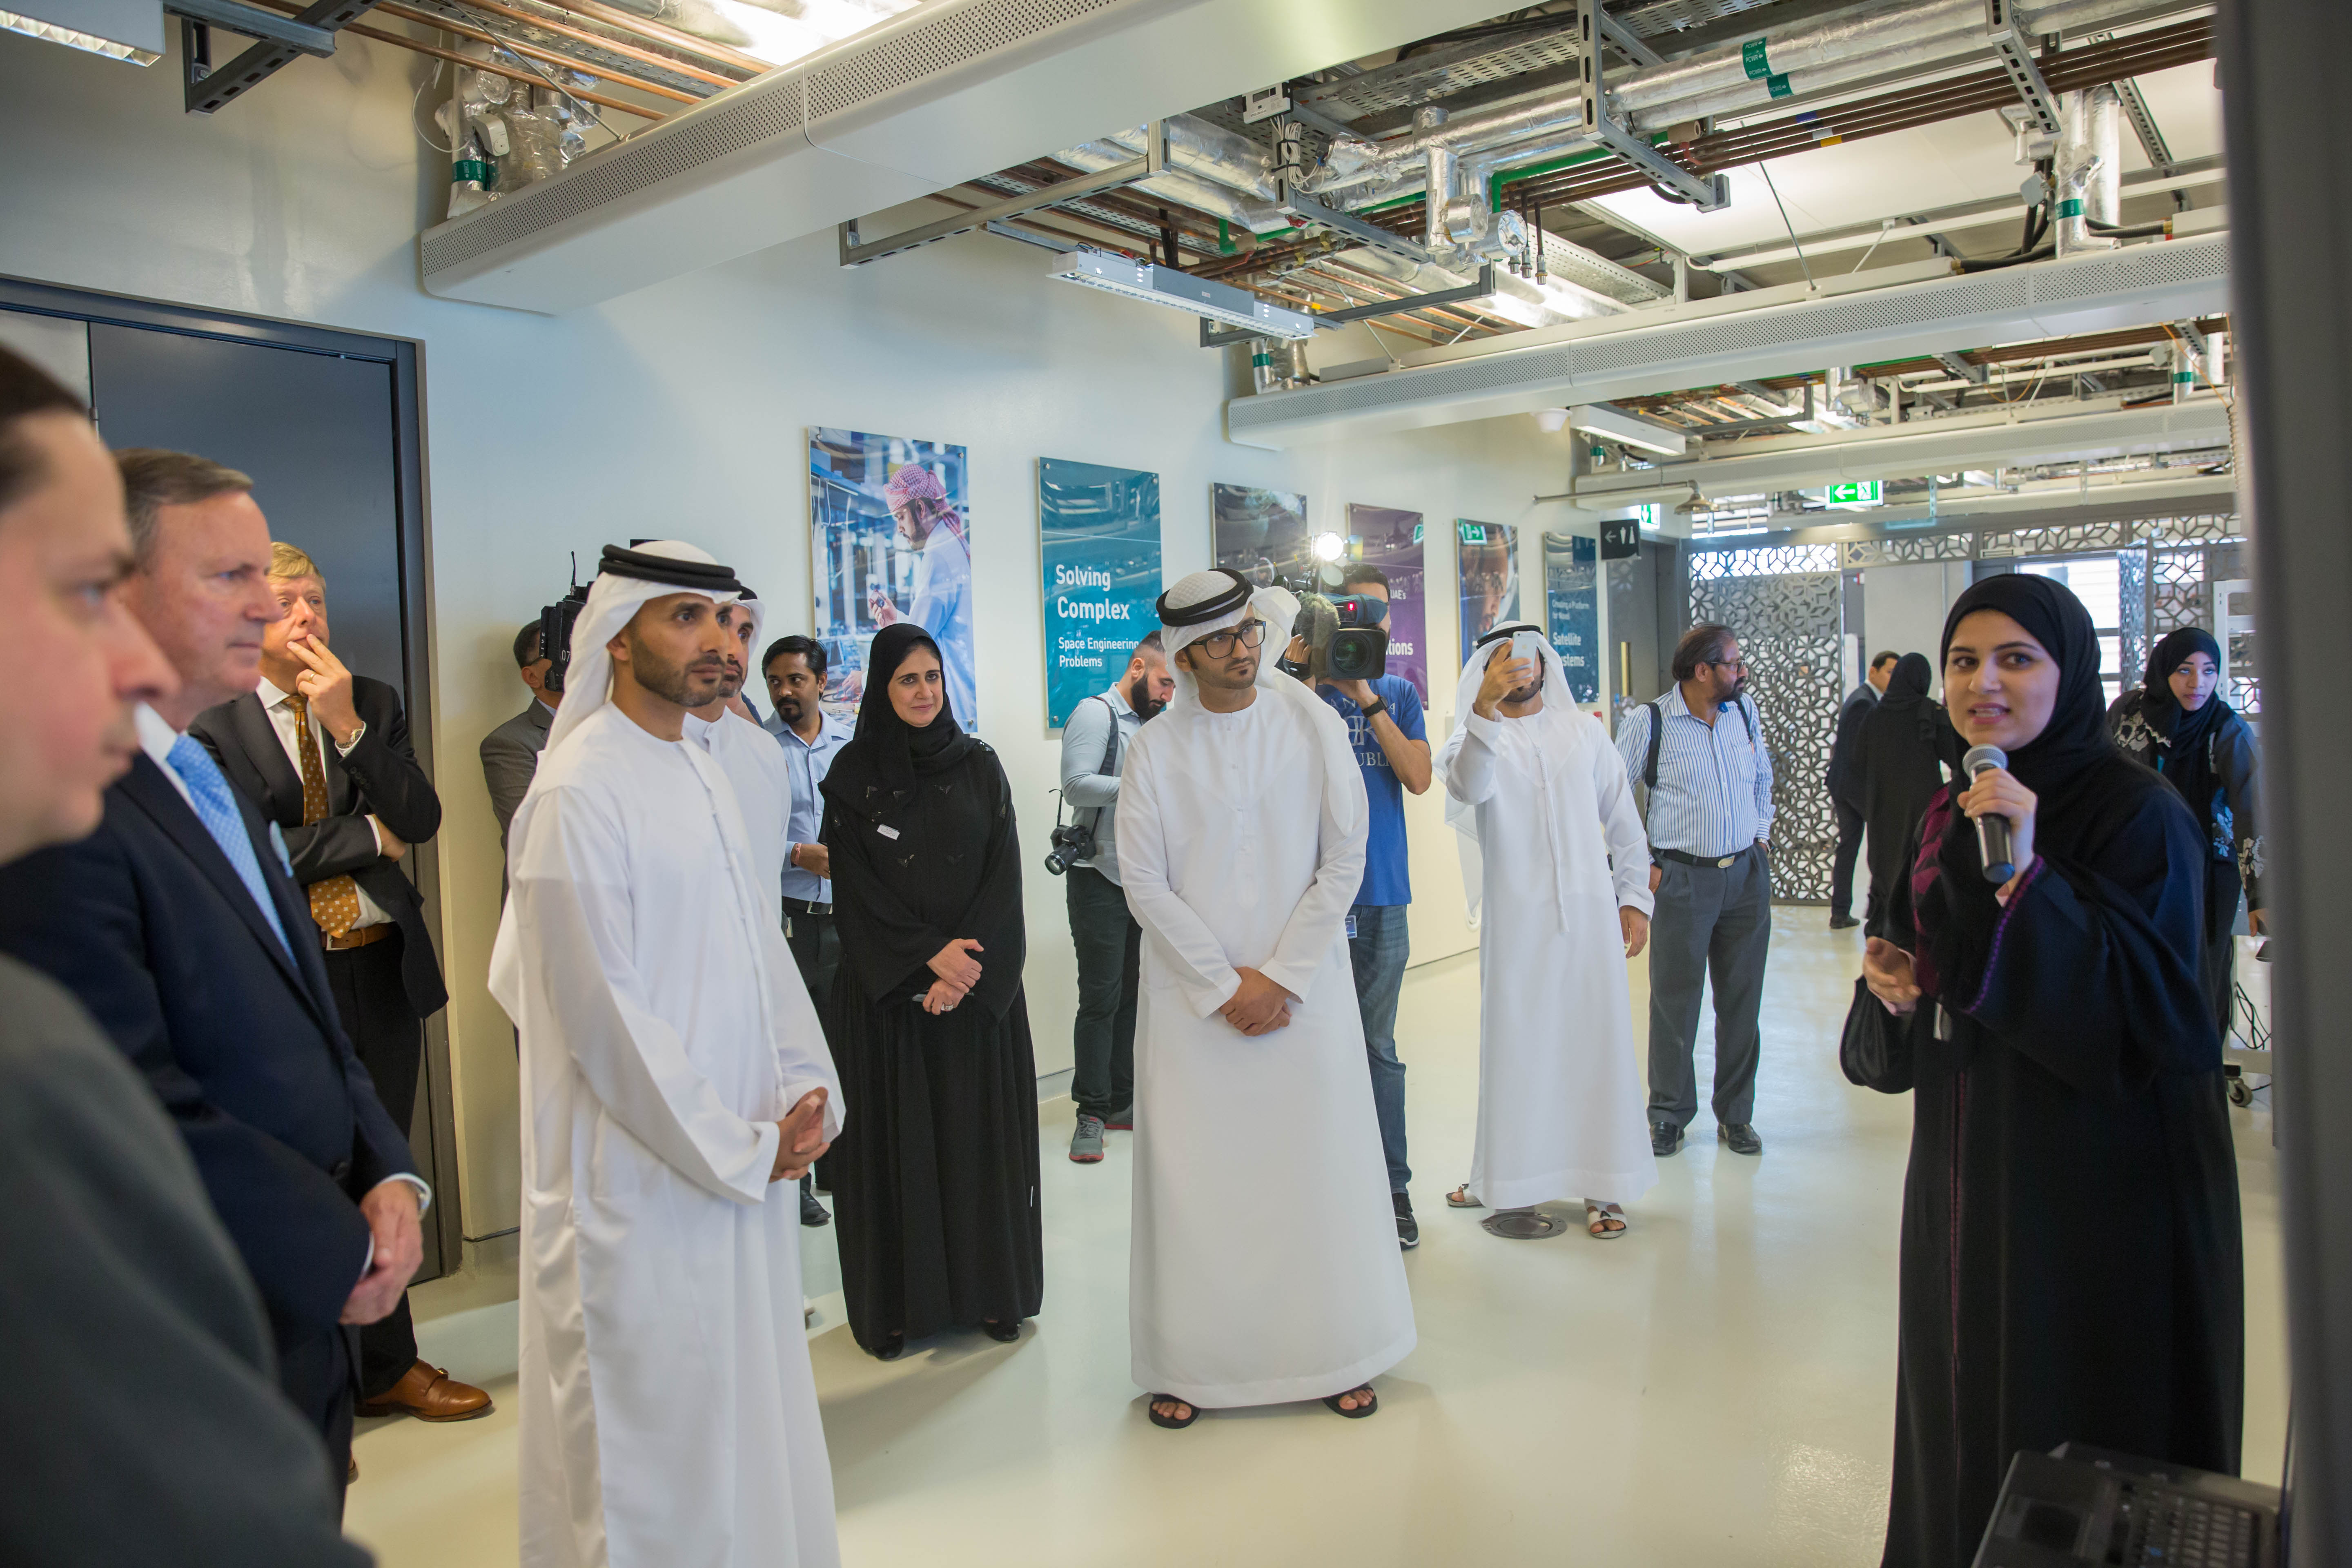 1 yahsat space laboratory launched at masdar institute